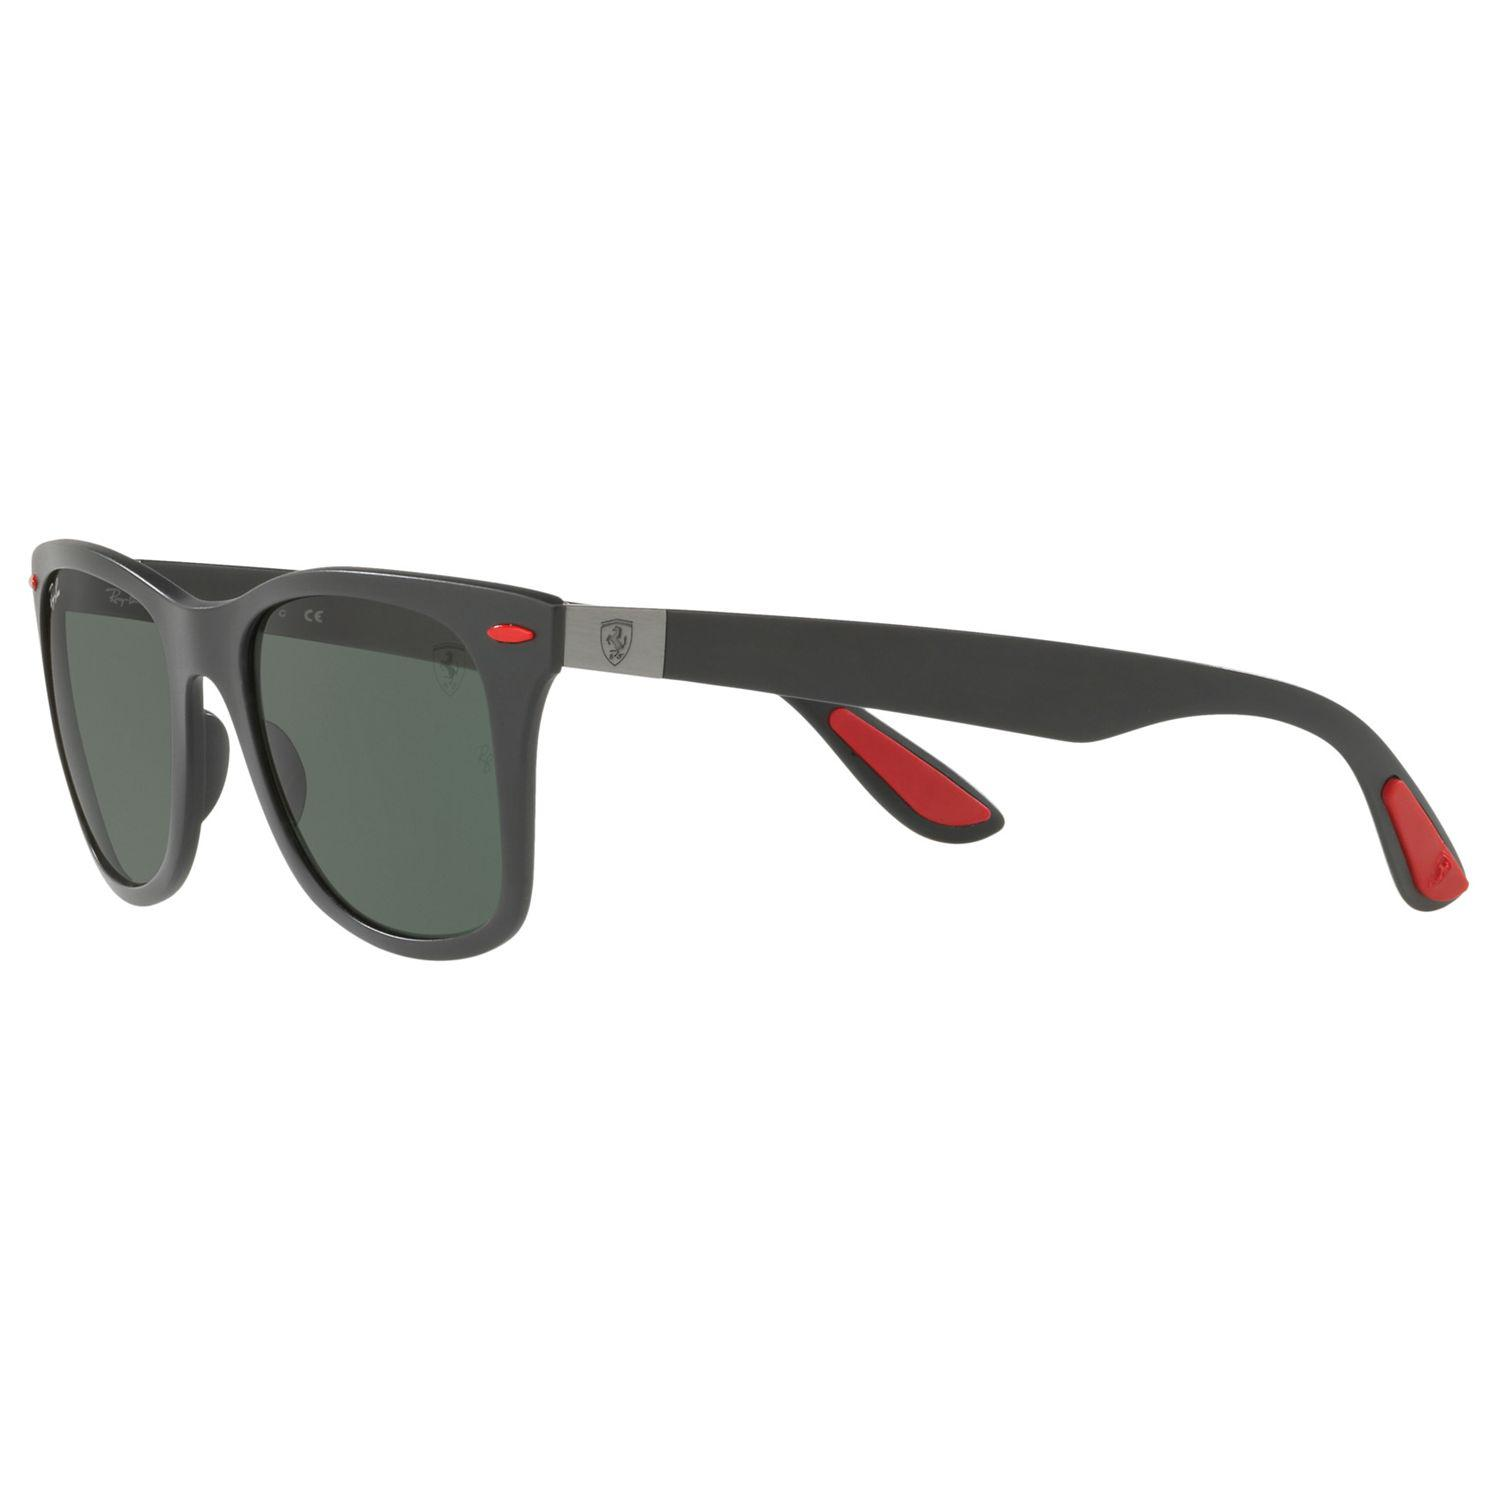 d620d043d7 ... get ray ban green rb4195m scuderia ferrari wayfarer sunglasses for men  lyst. view fullscreen e1e5c